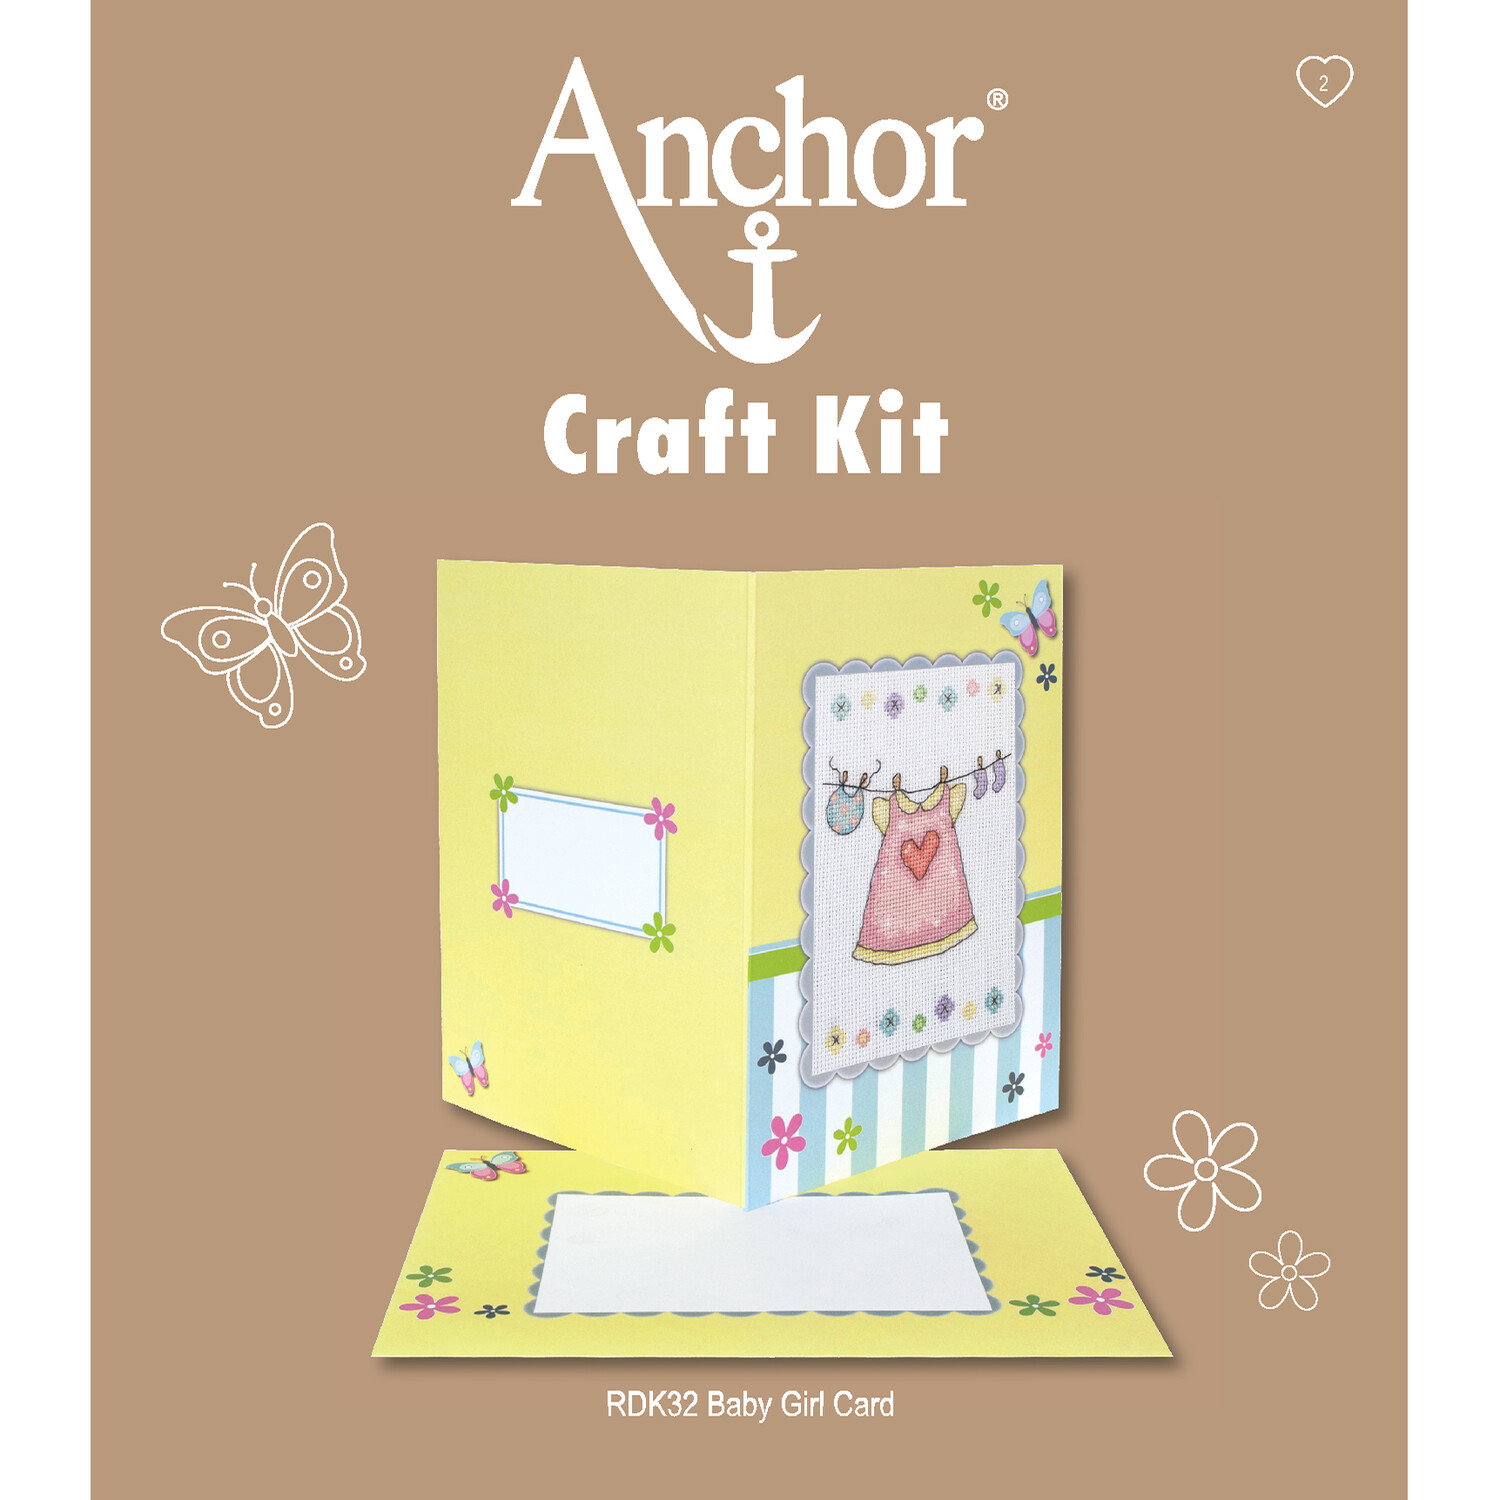 Anchor Craft Kit - Baby Girl Card